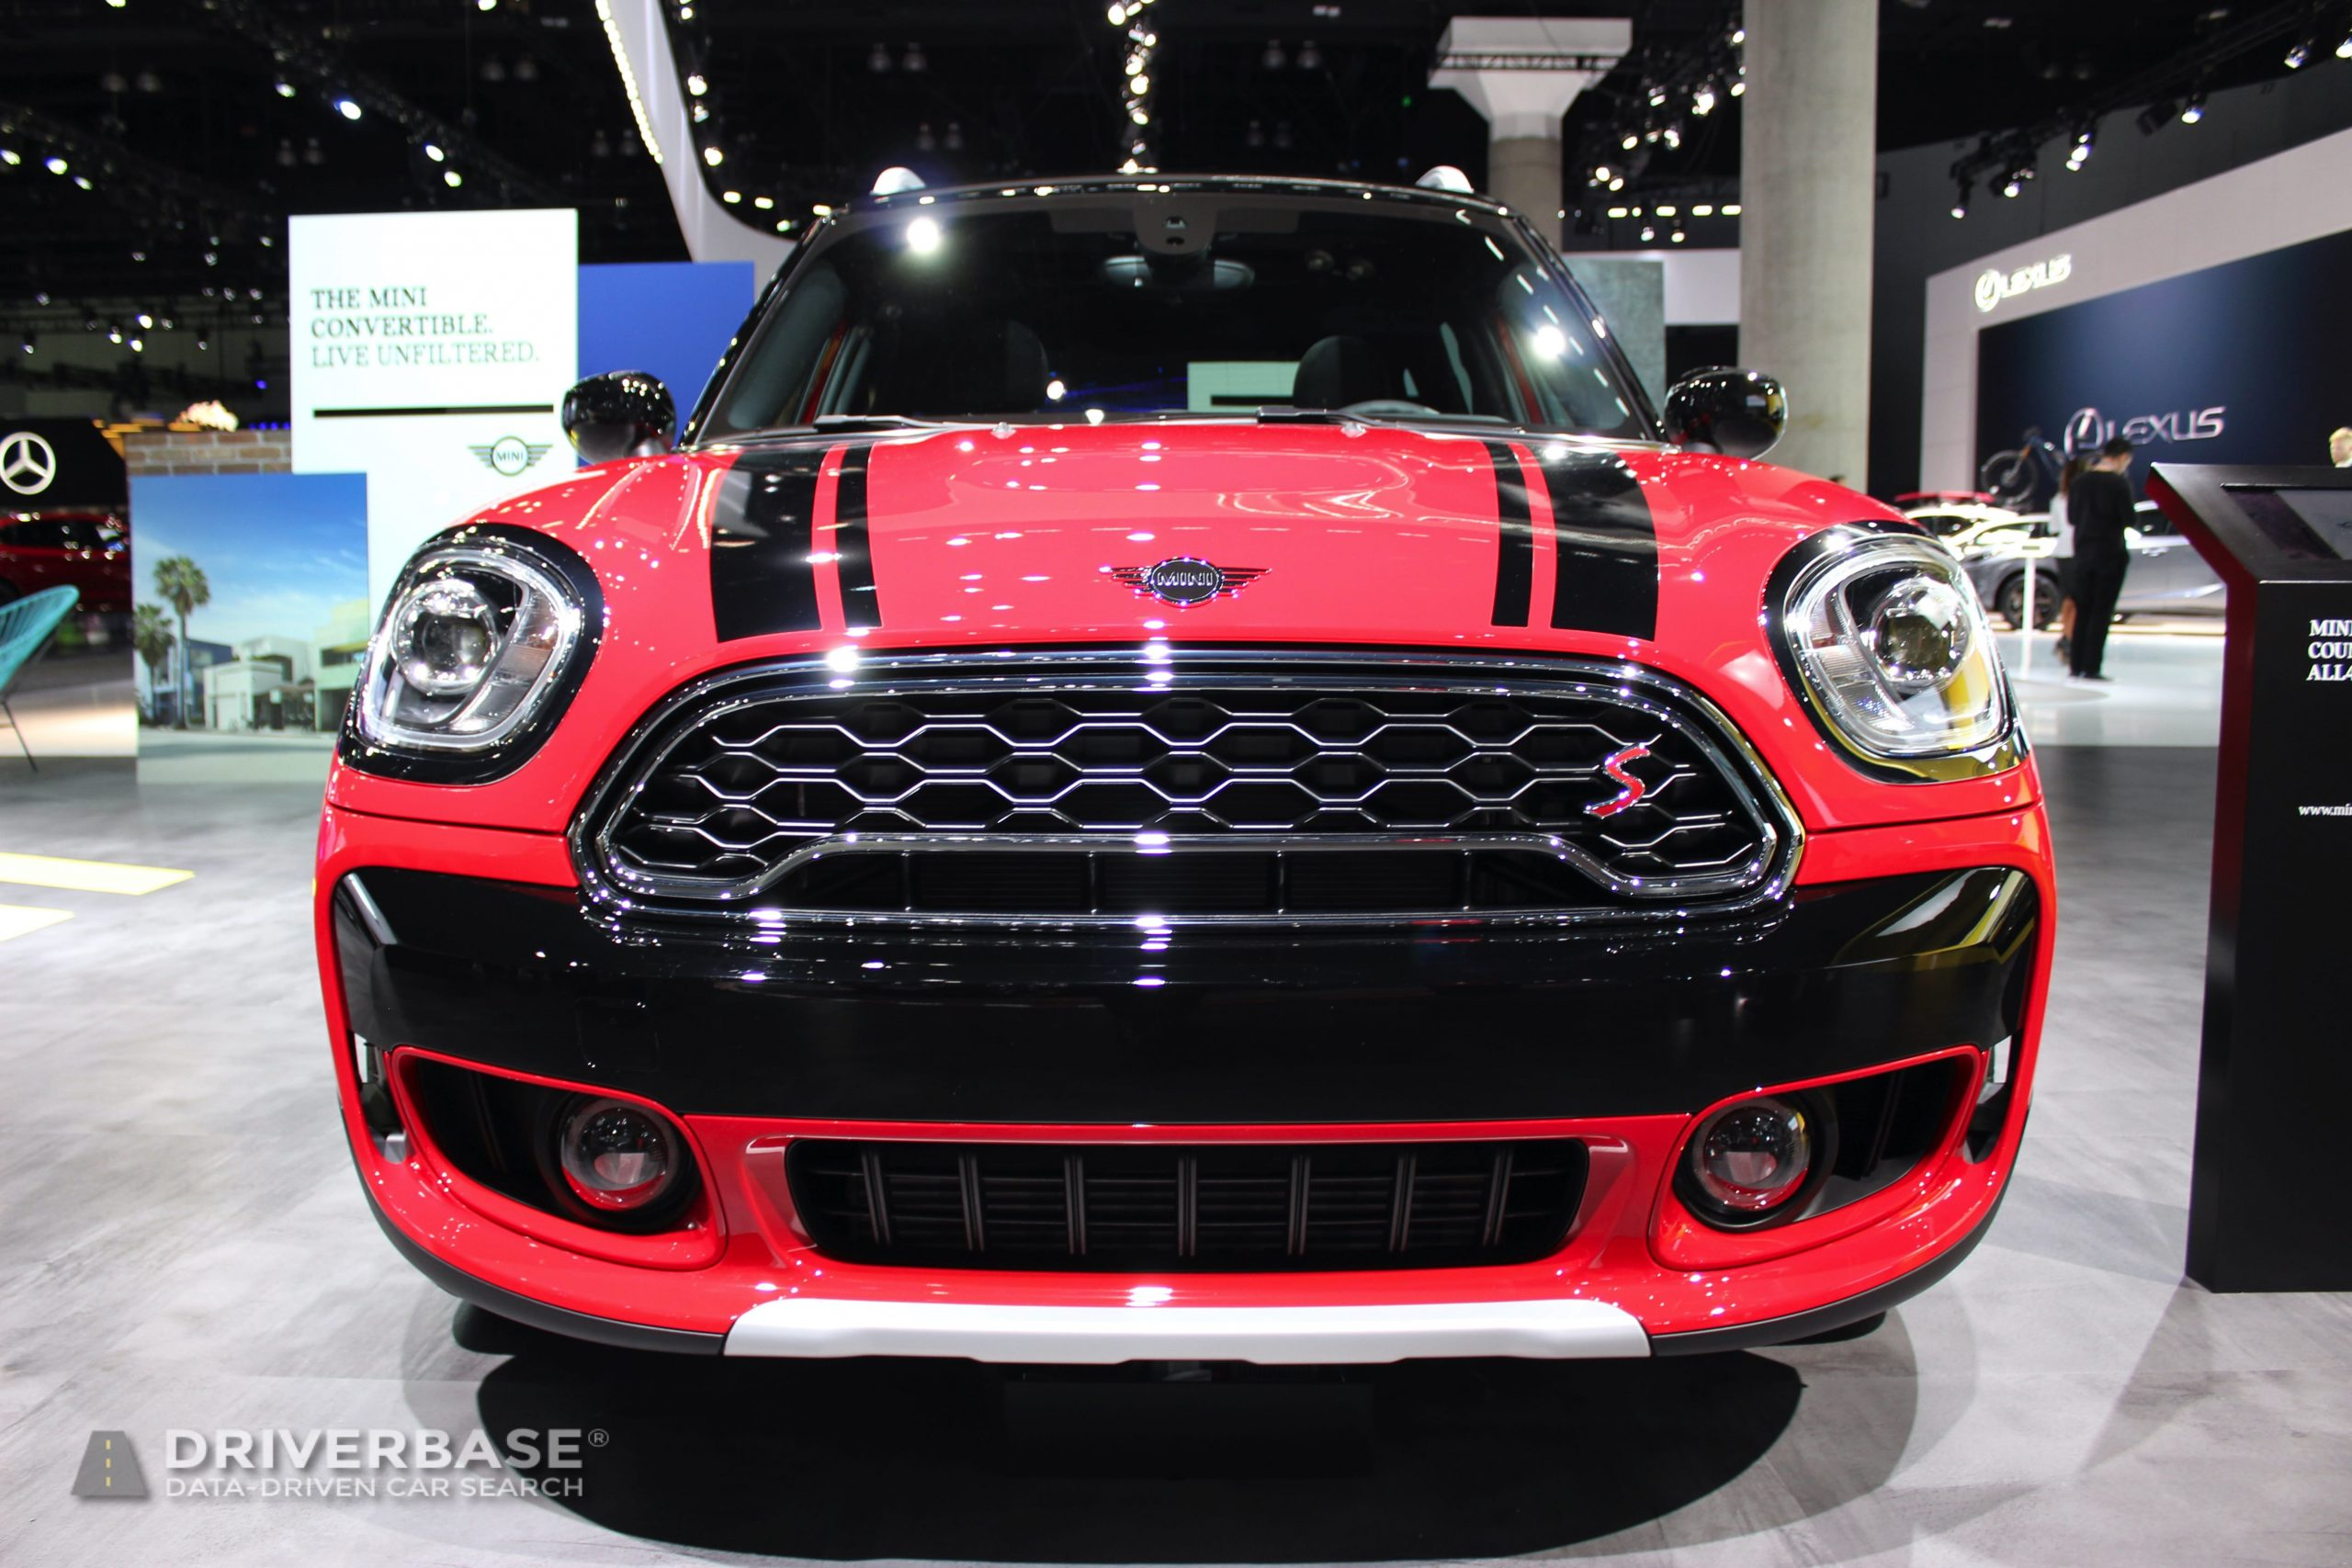 2020 MINI Cooper S Countryman at the 2019 Los Angeles Auto Show